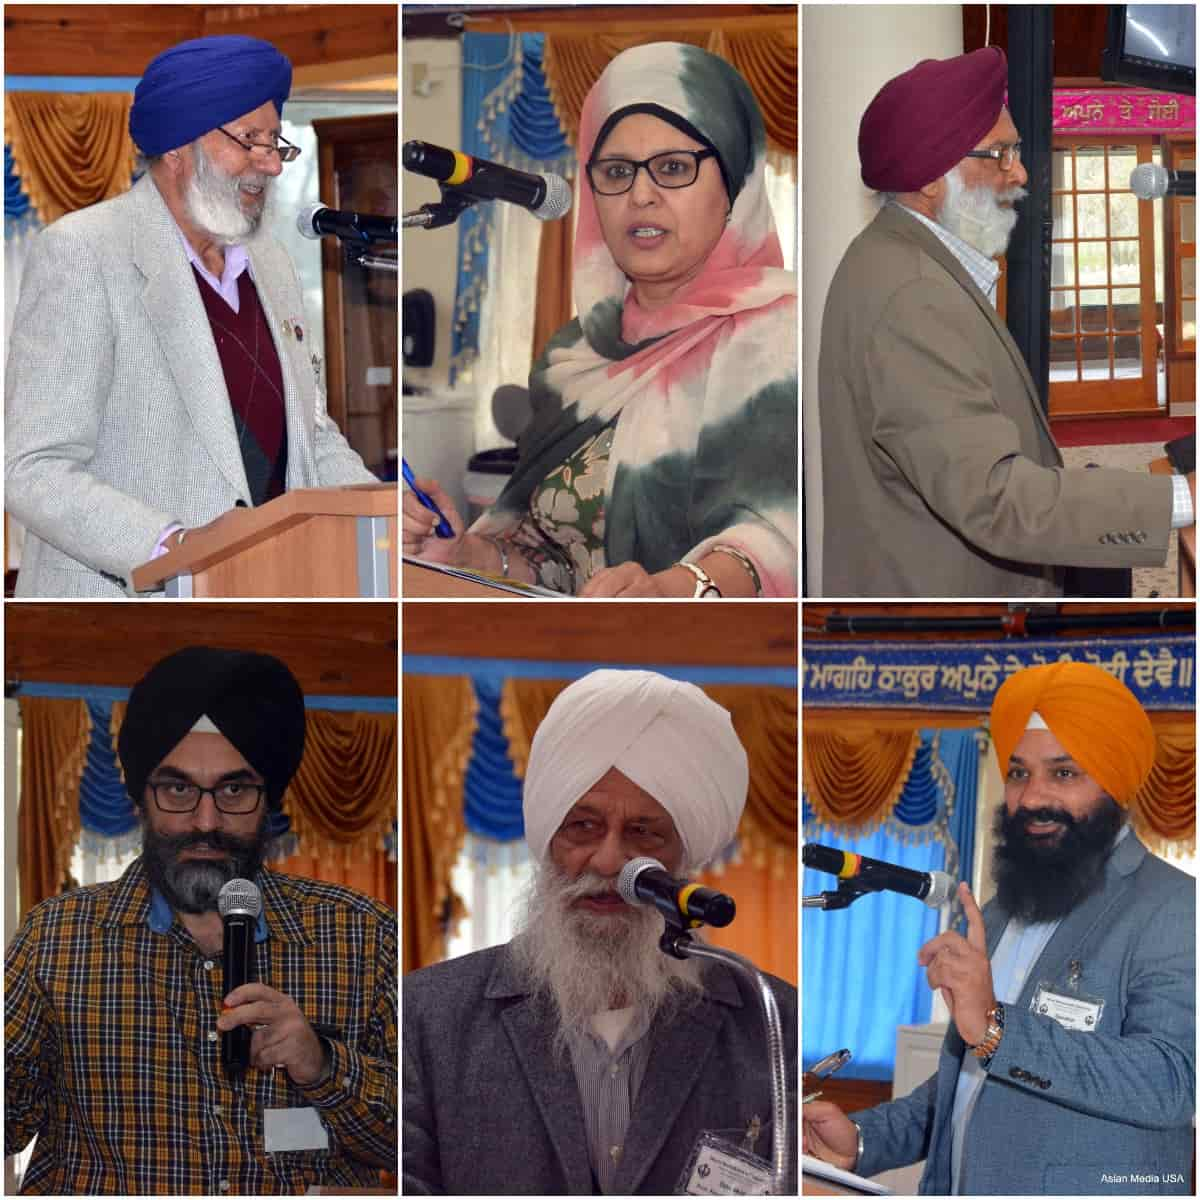 Speakers at Sikh Chicago meet